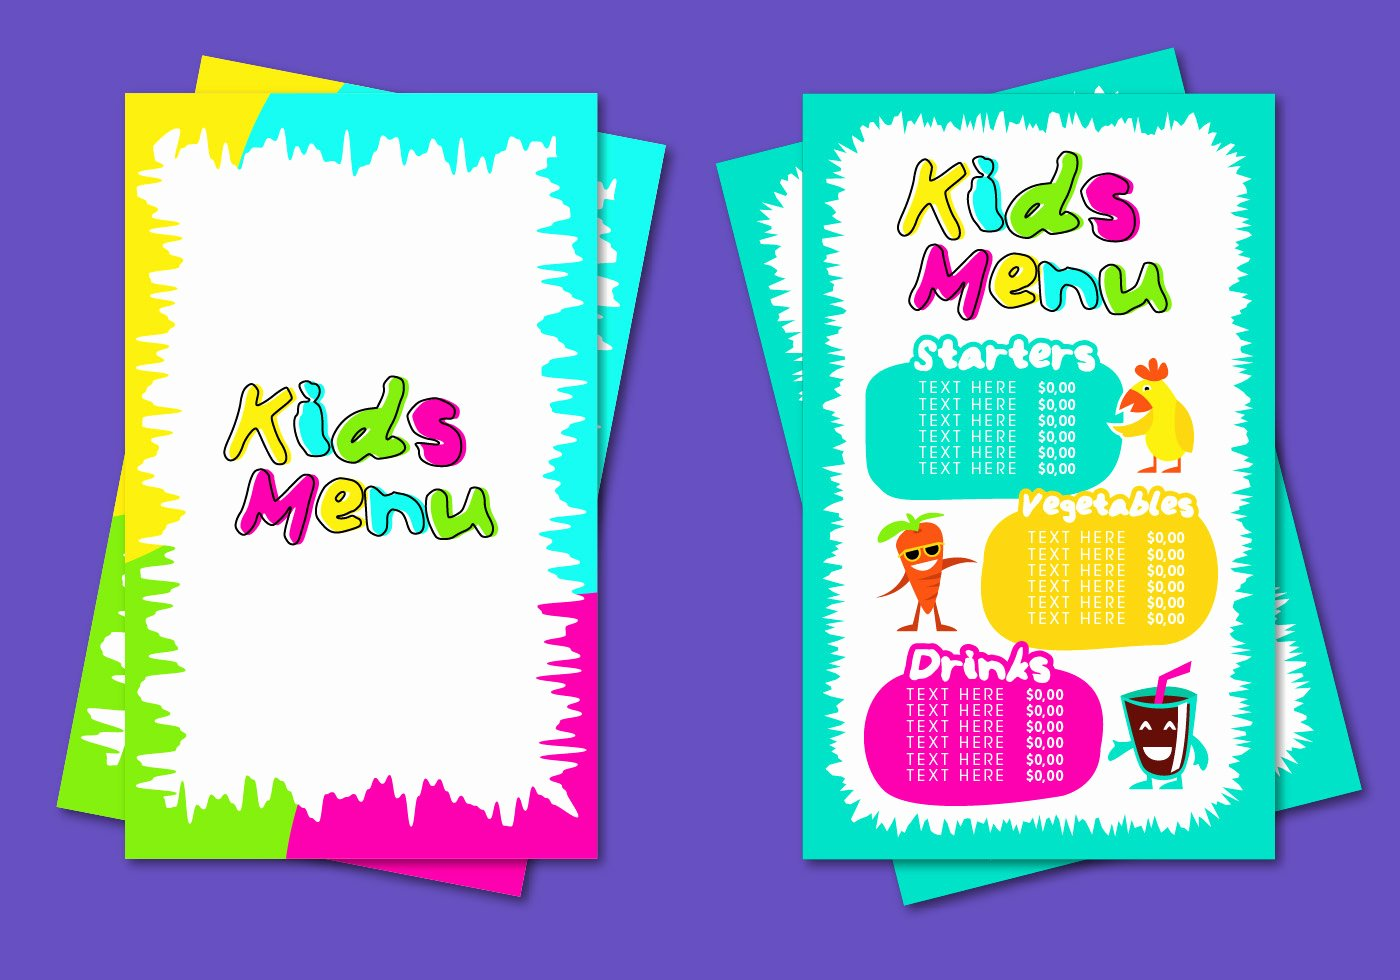 Free Kids Menu Template New Kids Menu Template Vector Download Free Vector Art